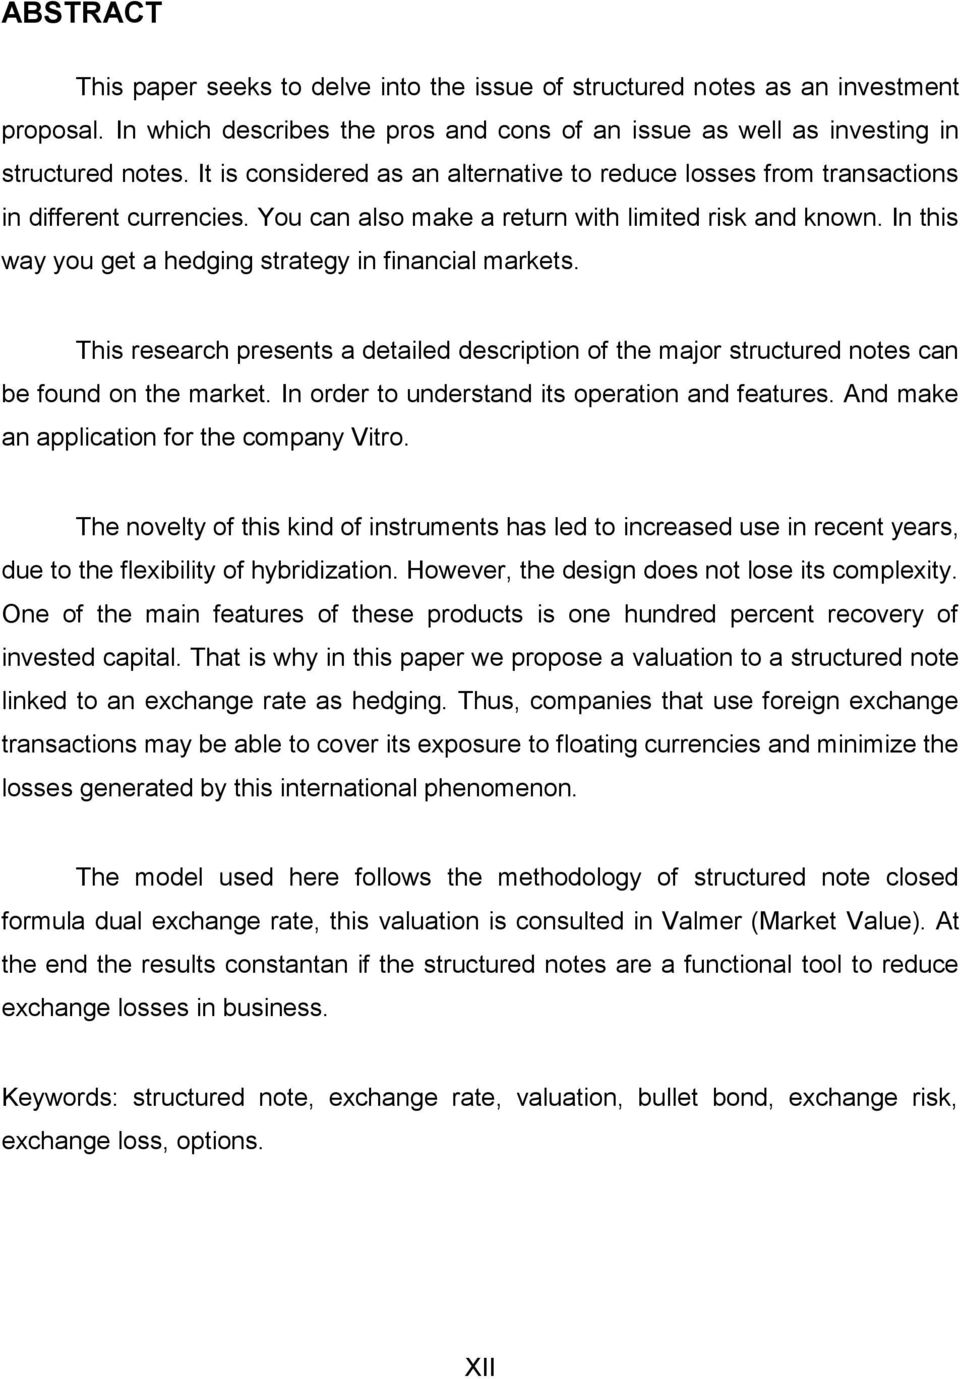 In this way you get a hedging strategy in financial markets. This research presents a detailed description of the major structured notes can be found on the market.